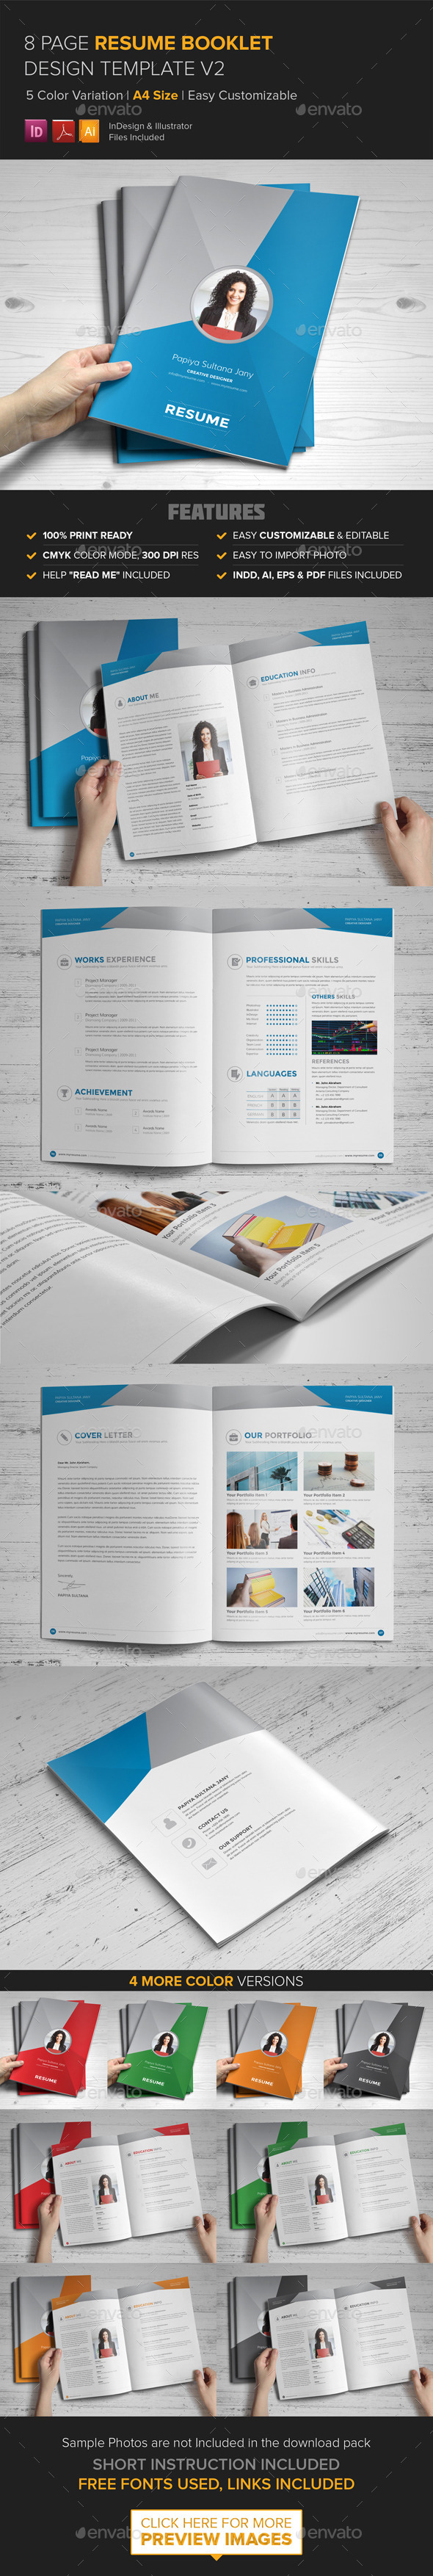 Resume Booklet Design InDesign v2